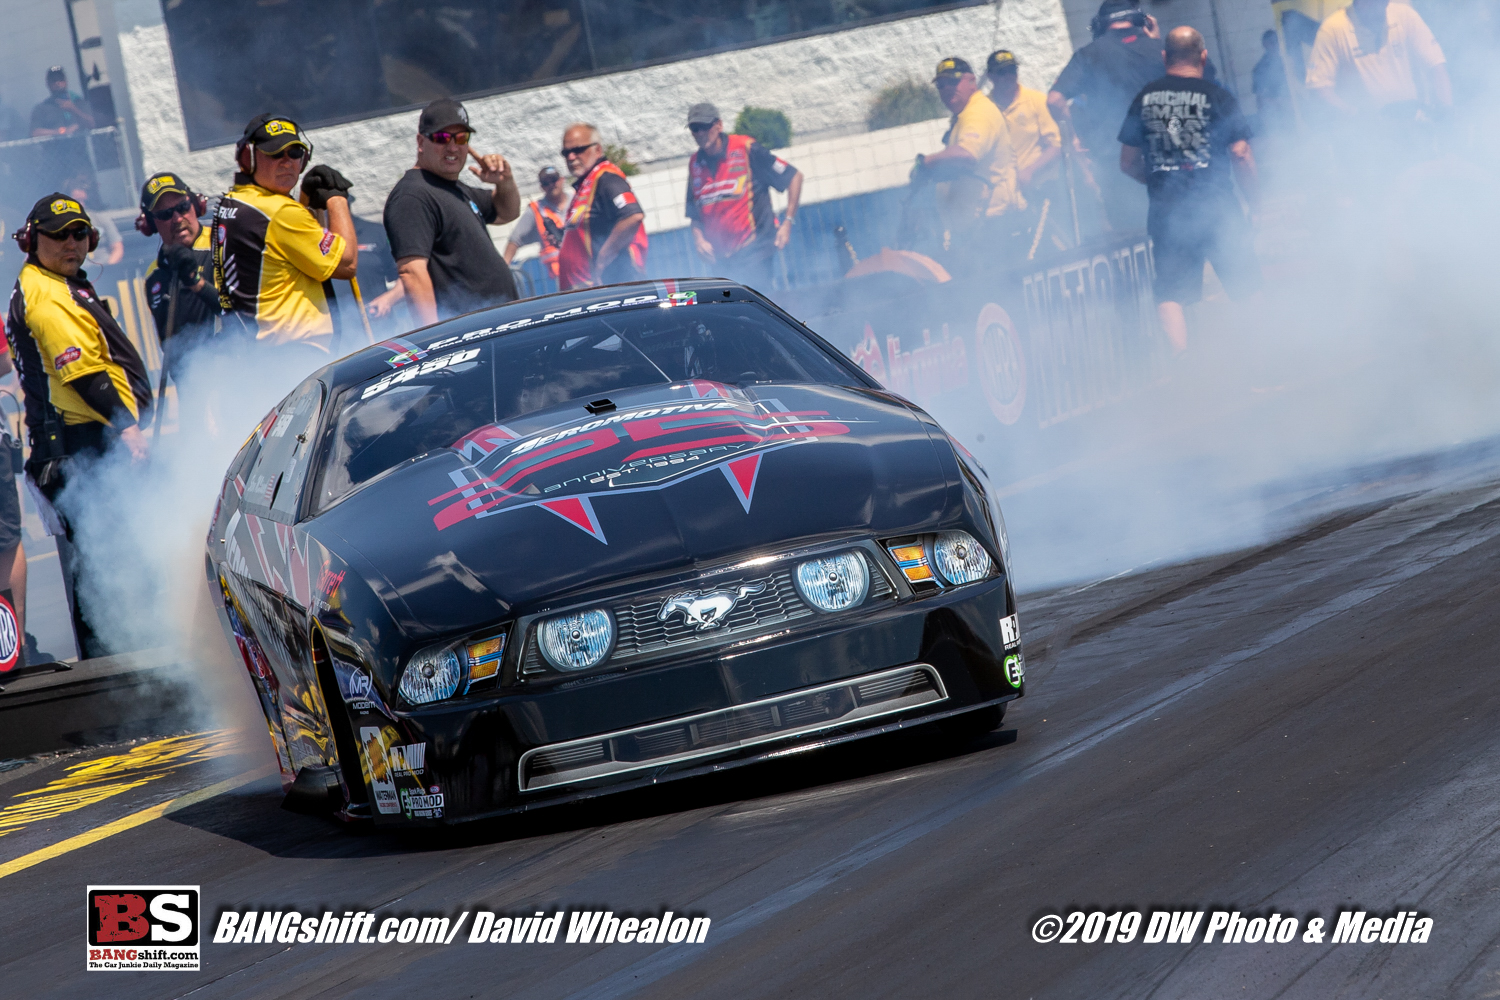 2019 NHRA Virginia Nationals Photo Coverage: E3 Spark Plugs Pro Modified Series Action Images!